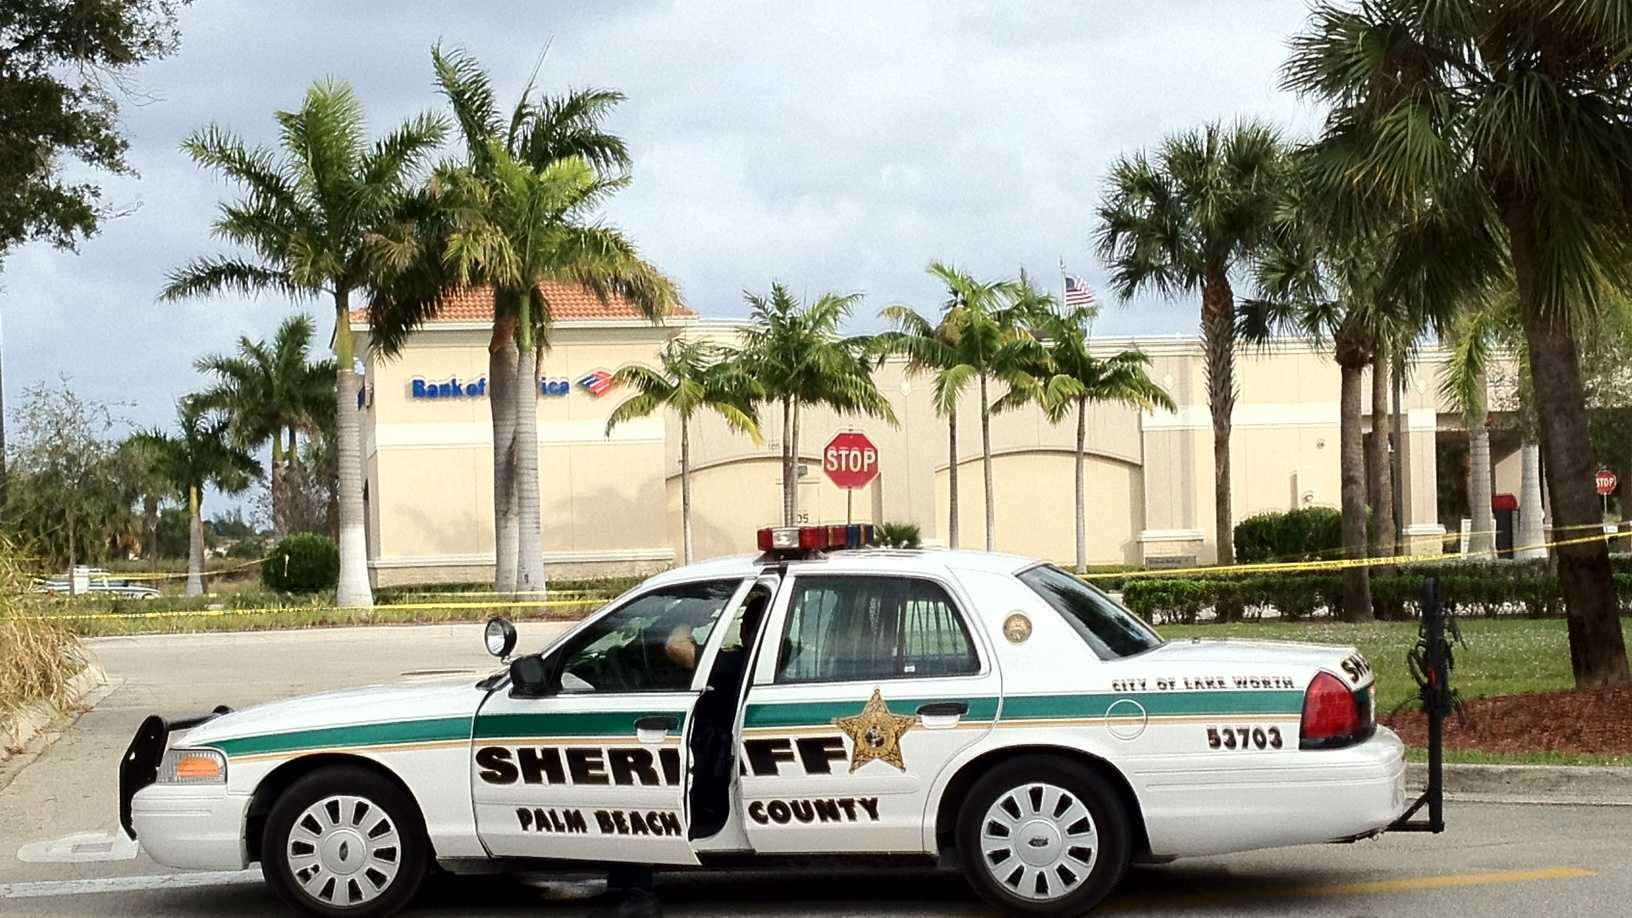 Deputies are investigating a robbery at the Bank of America branch in Lake Park.